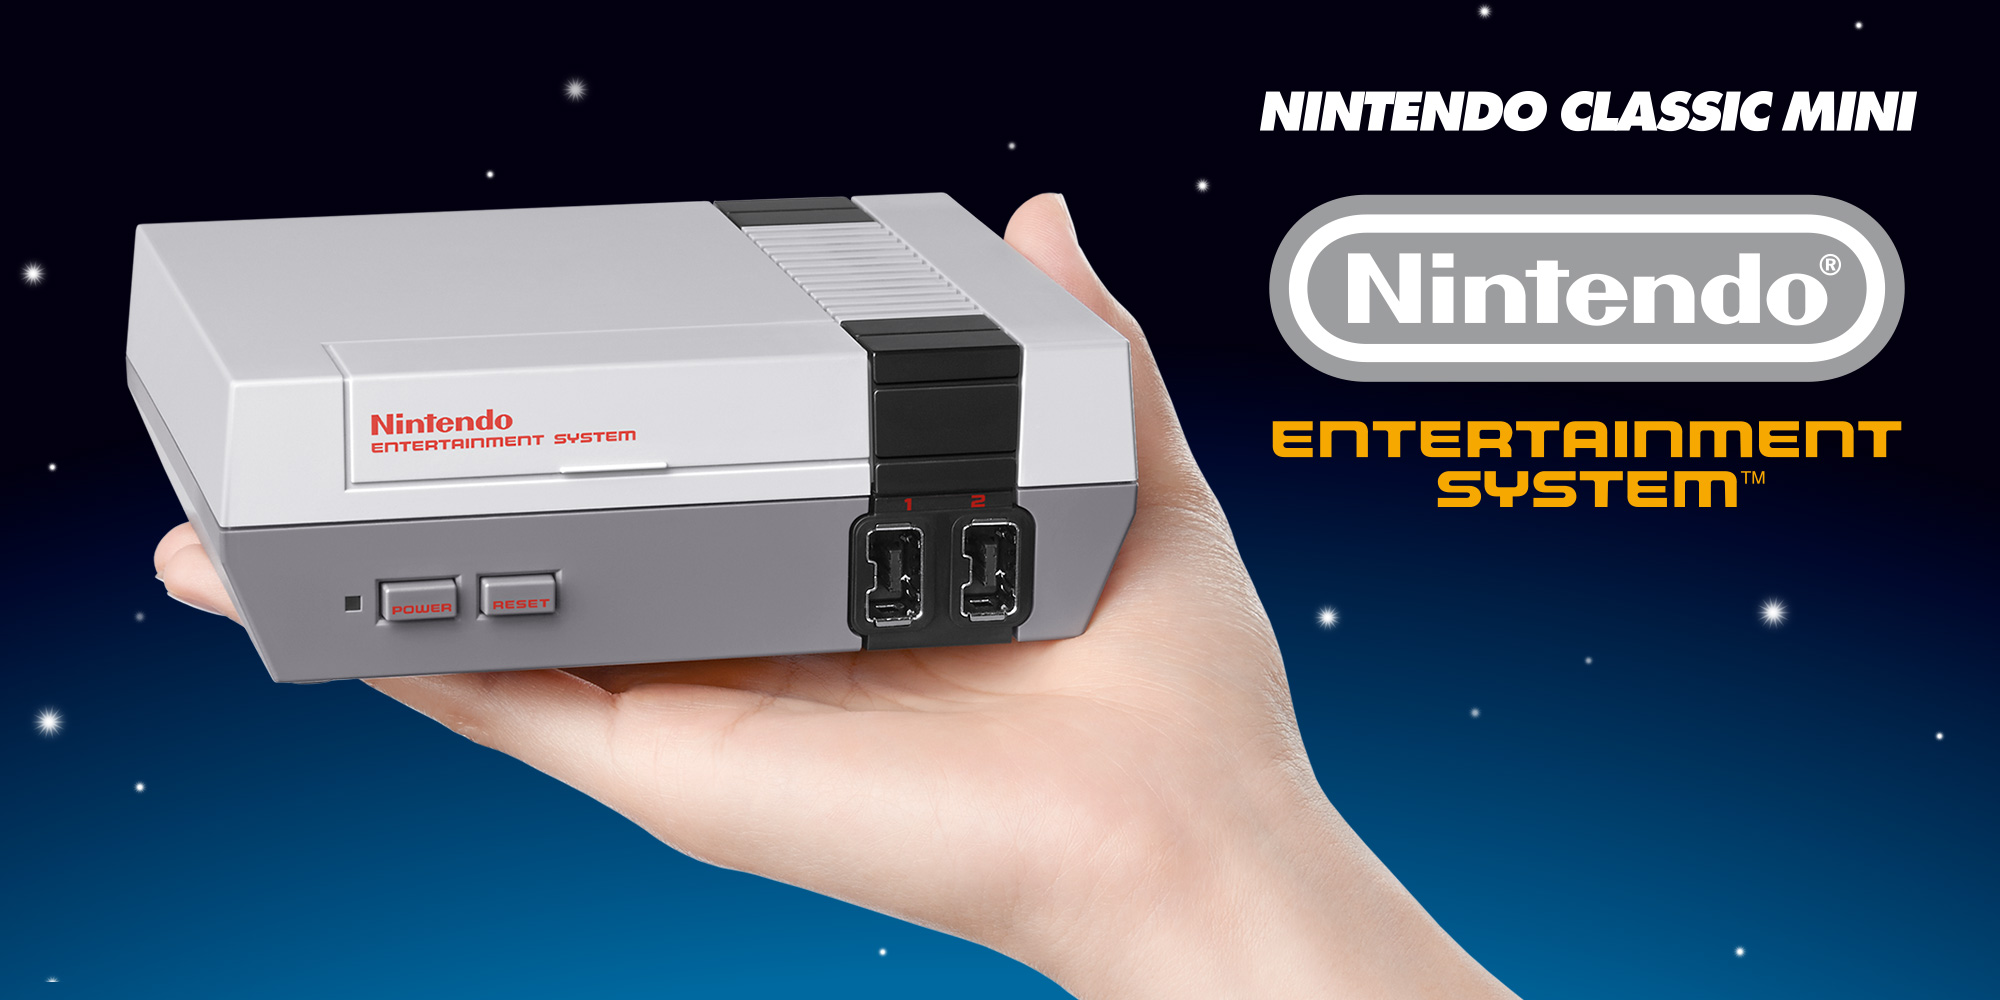 Nintendo Classic Mini Entertainment System (NES) – UNBOXING